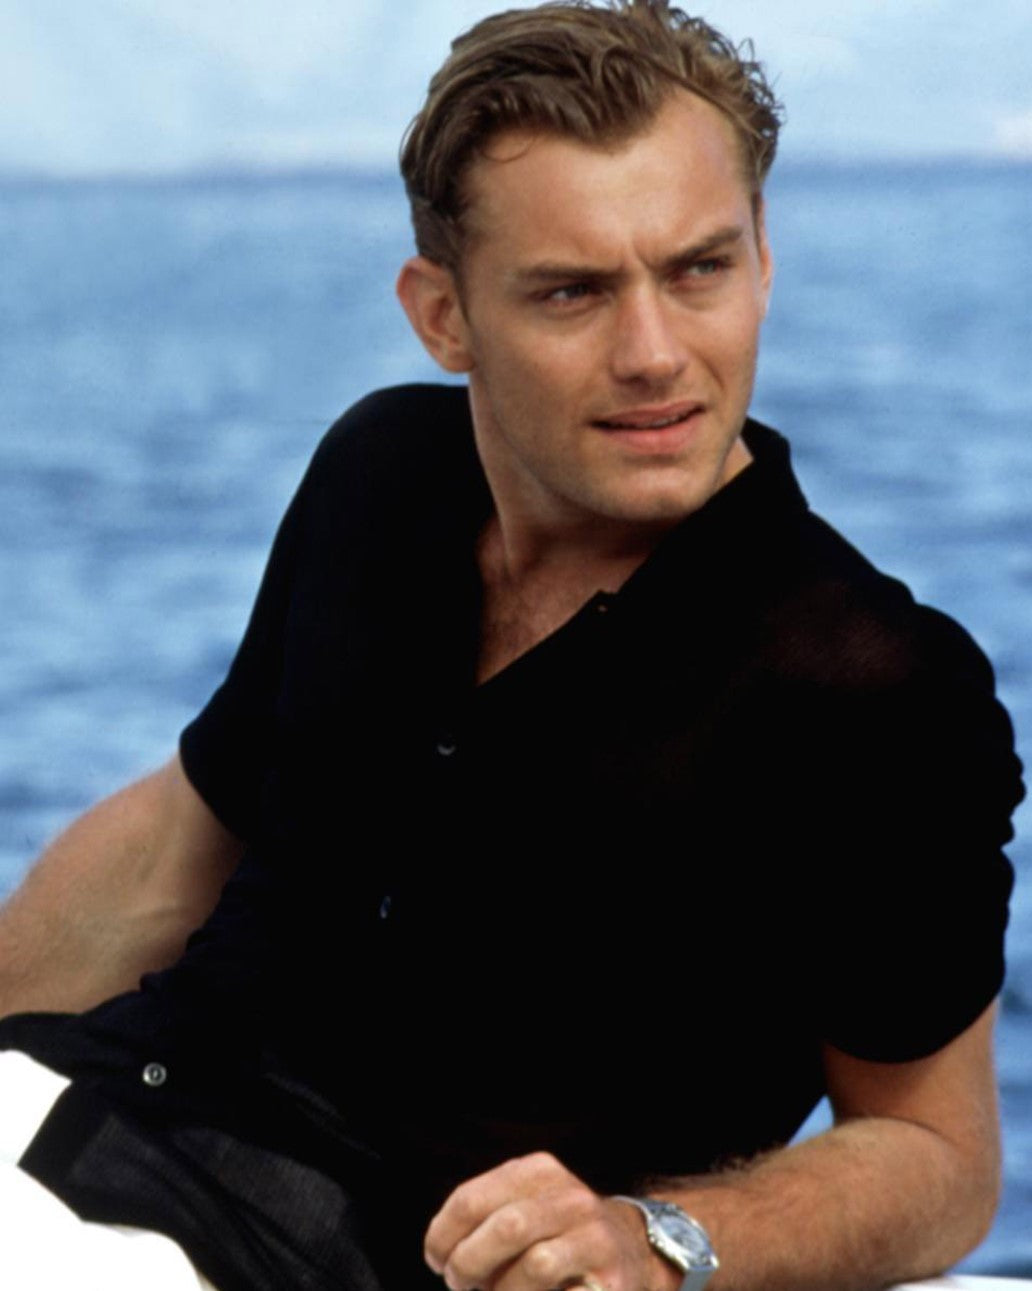 Jude Law wearing a camp collar shirt as Dickie Greenleaf in The Talented Mr Ripley